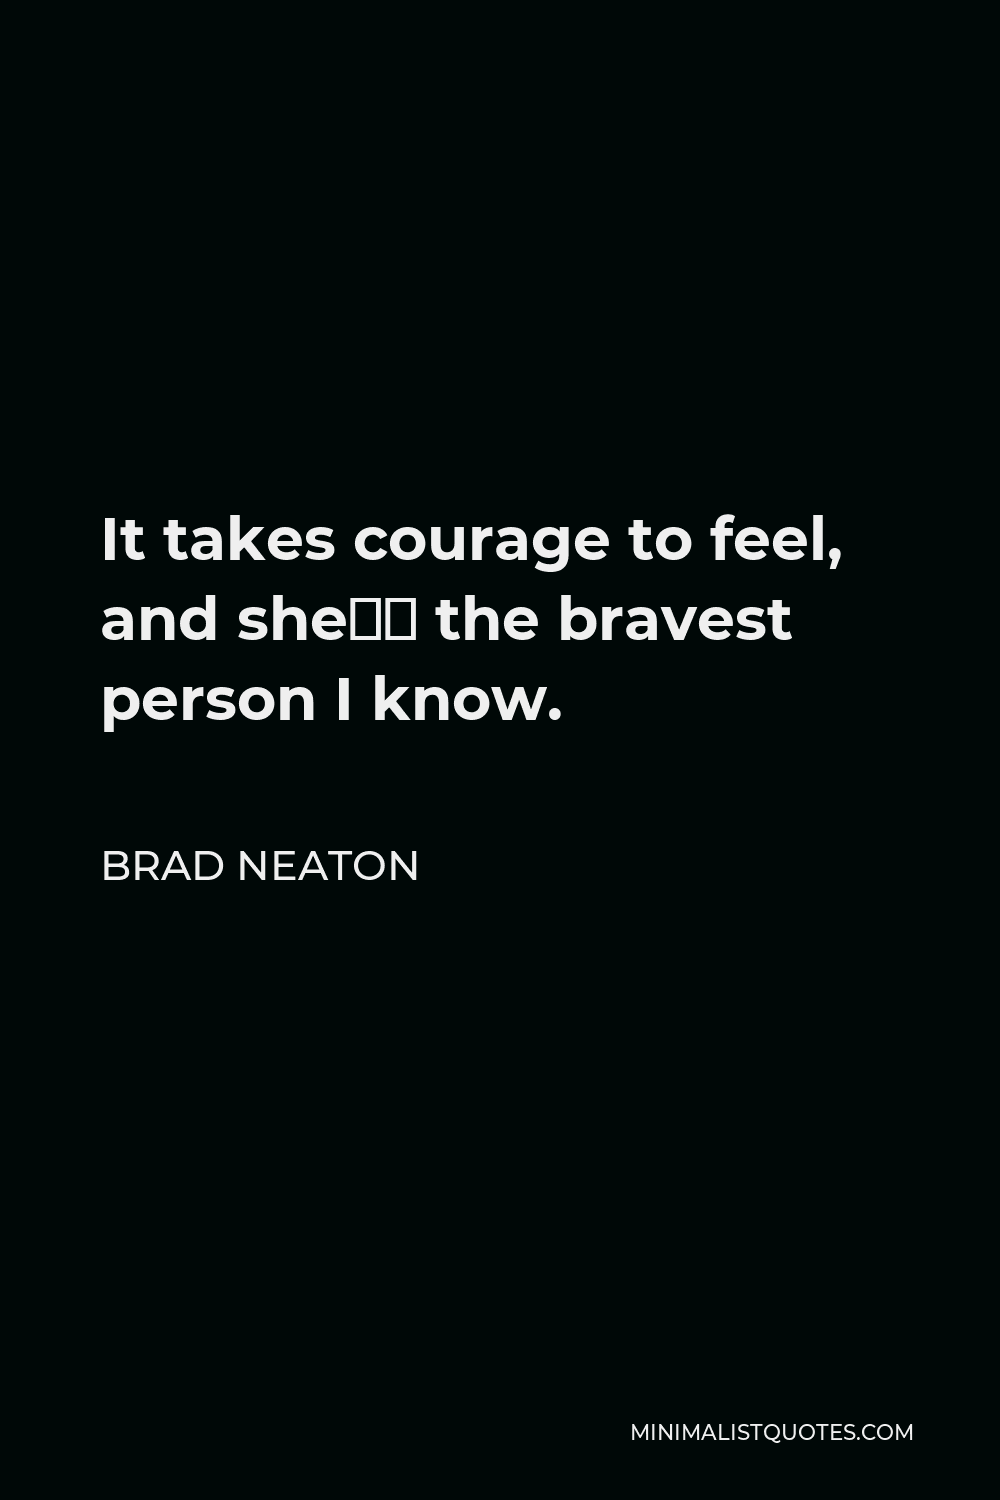 Brad Neaton Quote - It takes courage to feel, and she's the bravest person I know.